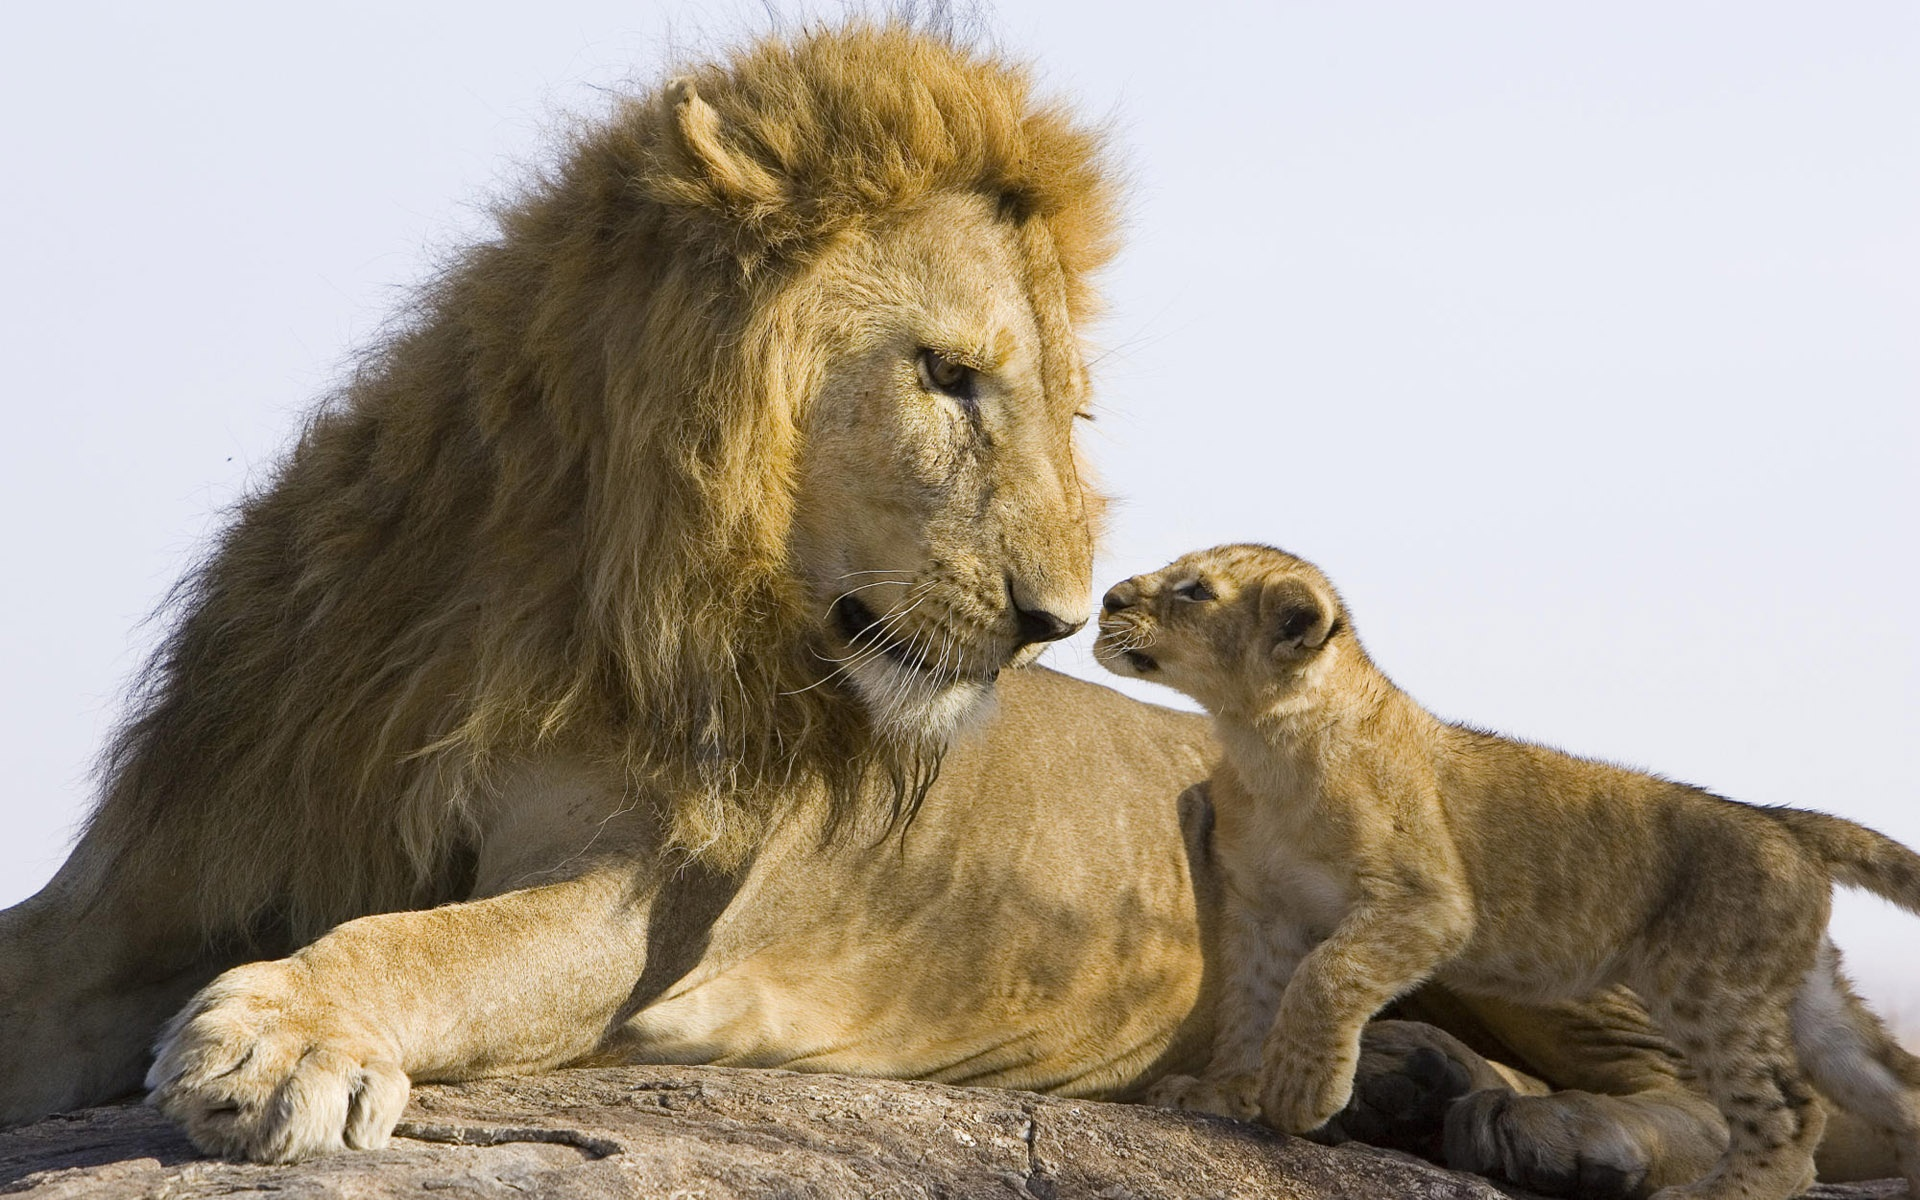 Big Lion And baby Lion Wallpapers